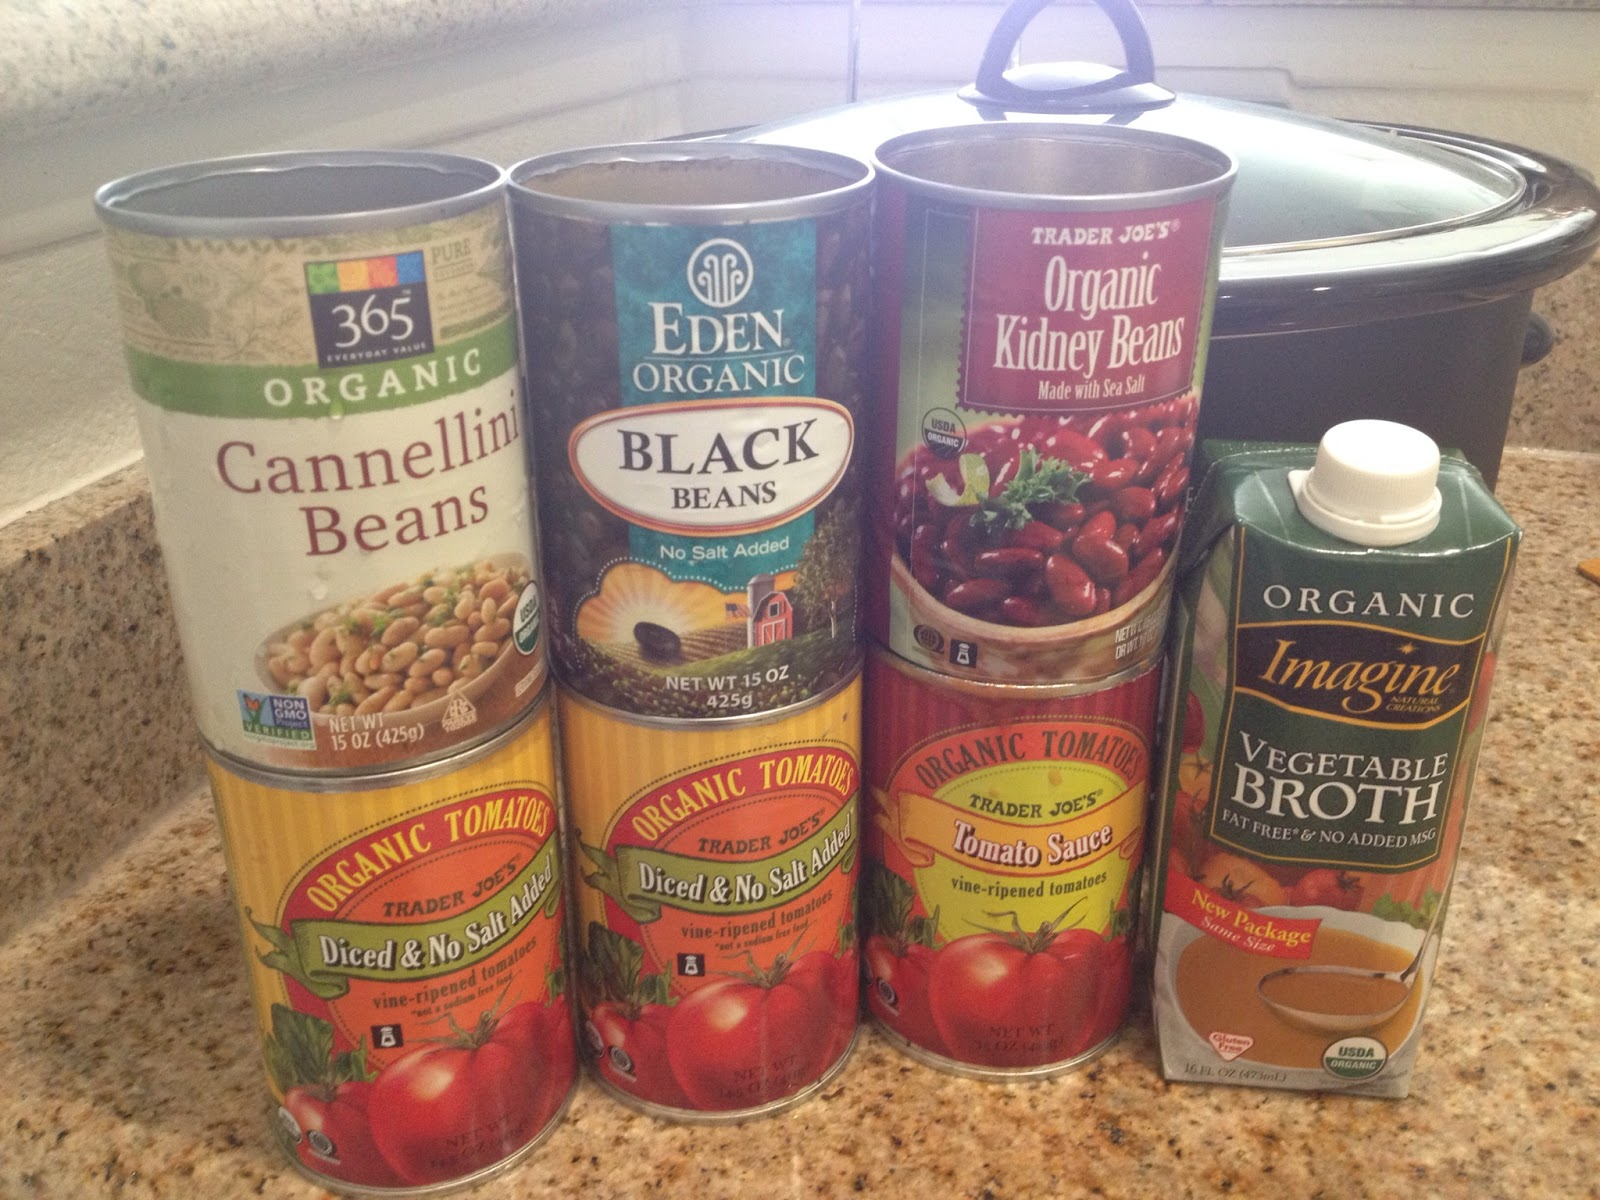 The Nelson Tales Clean Eating Crock Pot Chili